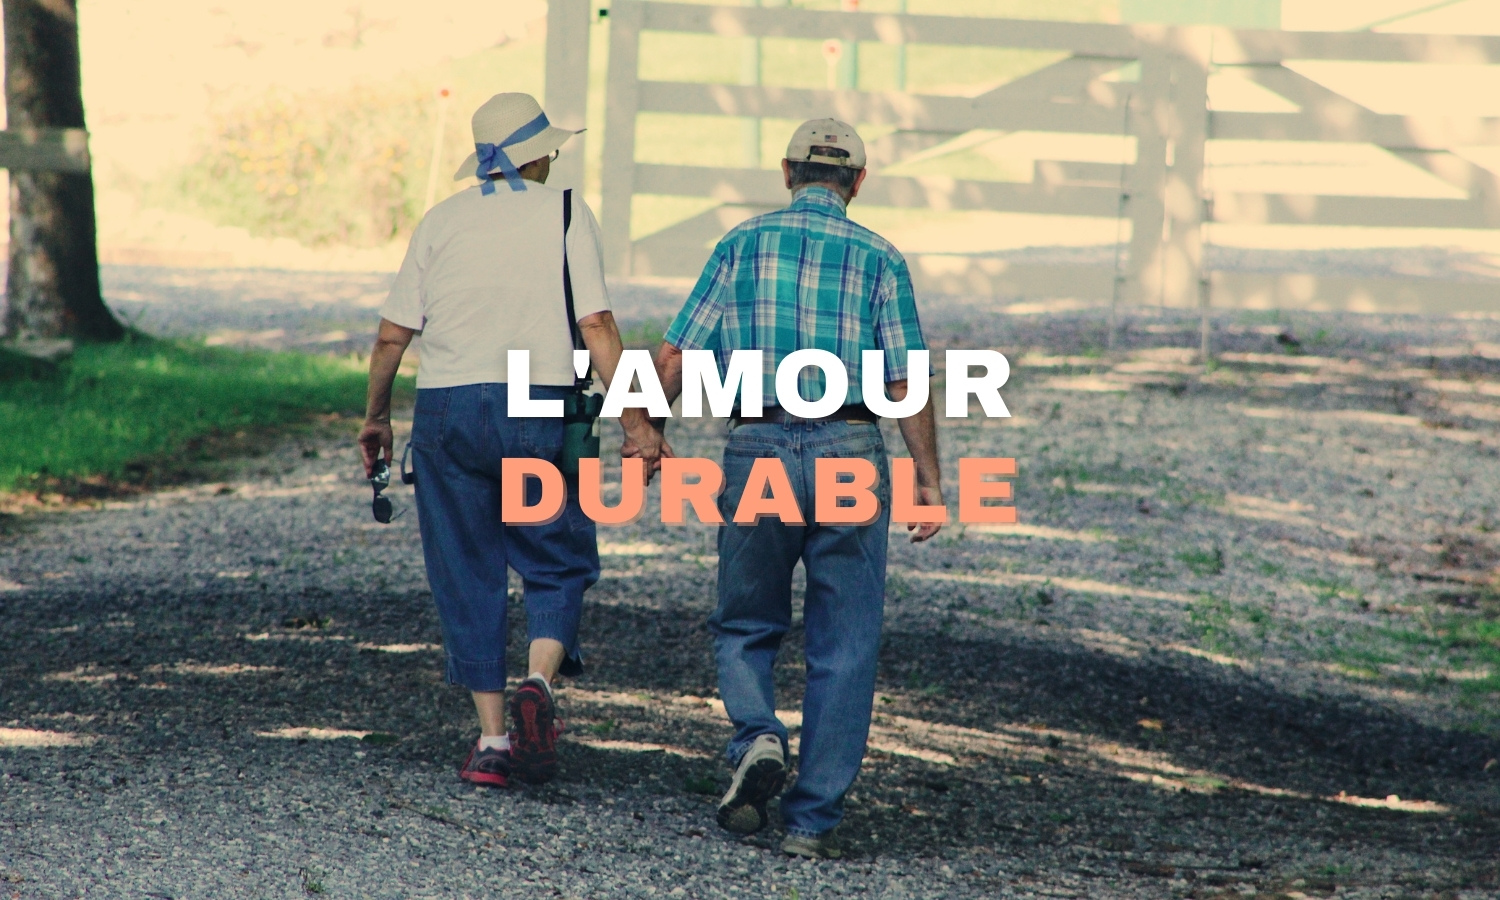 L'amour durable